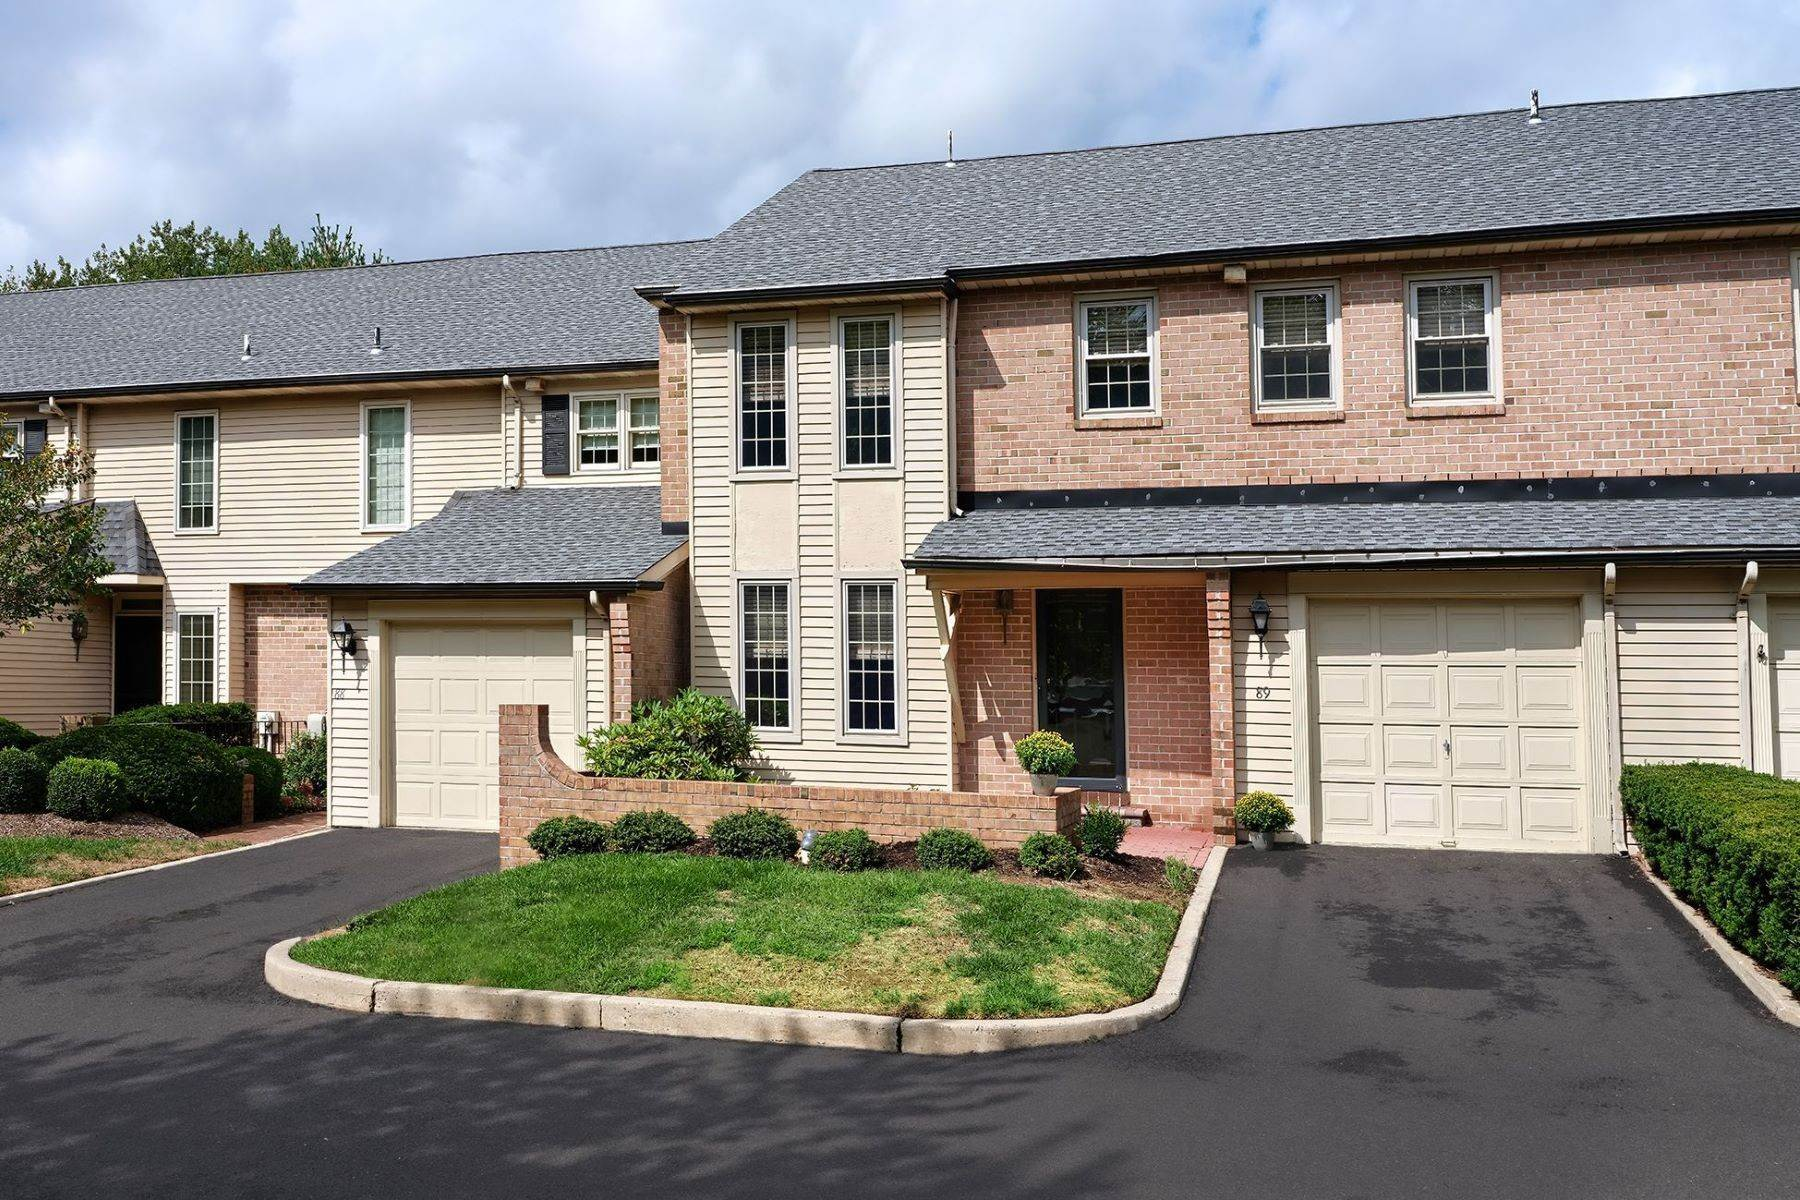 townhouses for Sale at Express Your Style in a Sunny, Spacious Townhouse 89 Sutphin Pines, Yardley, Pennsylvania 19067 United States